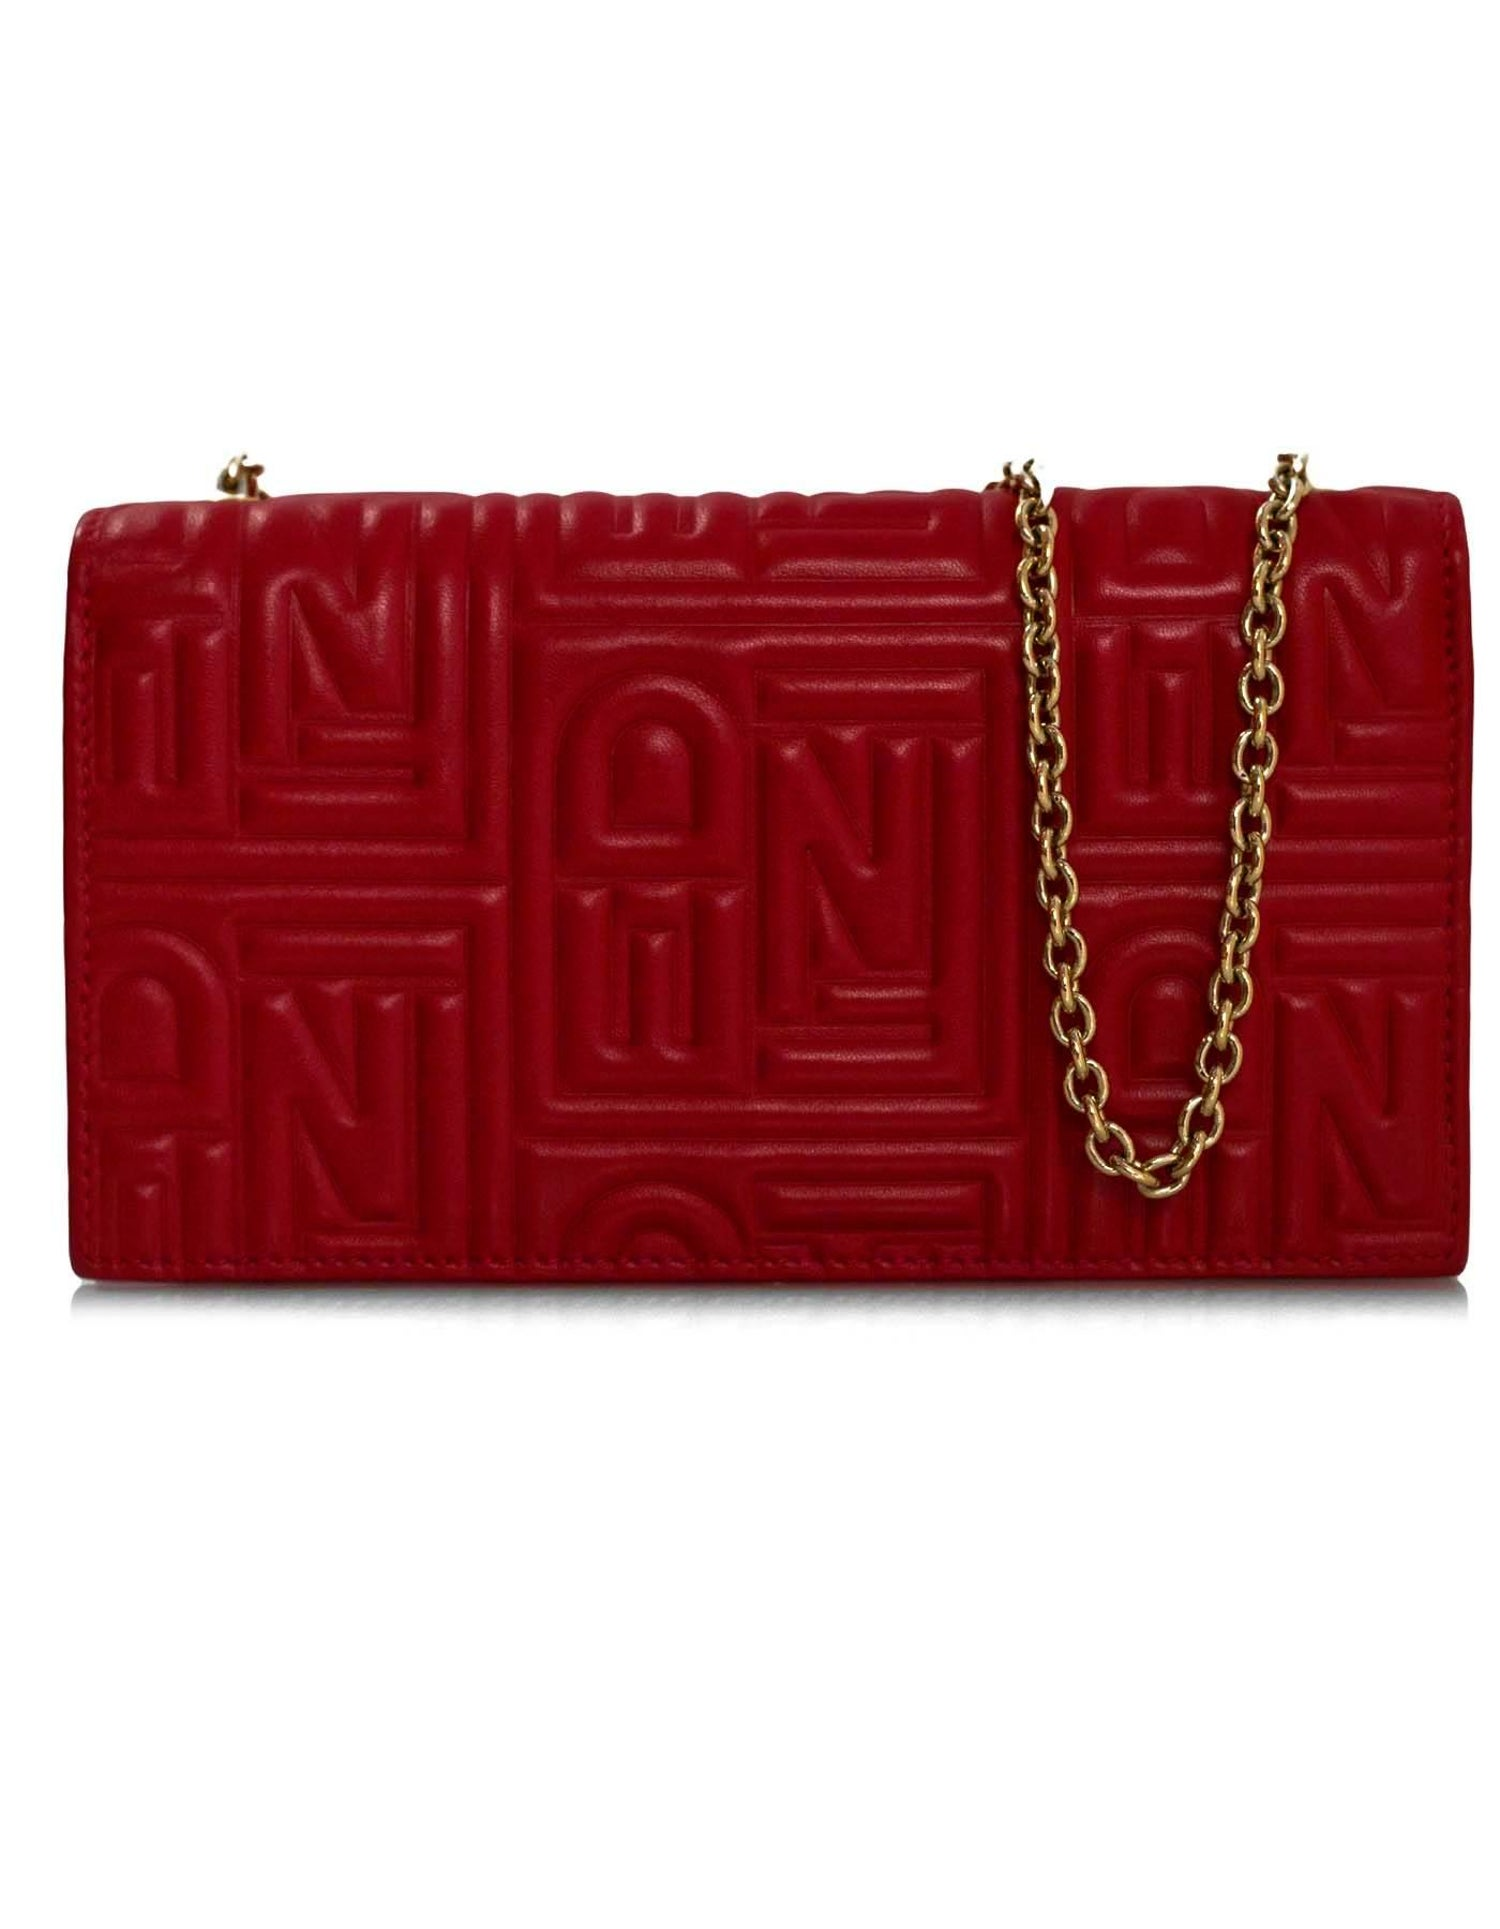 9fd2790417 Fendi Red Leather Embossed Logo Chain Wallet WOC Bag